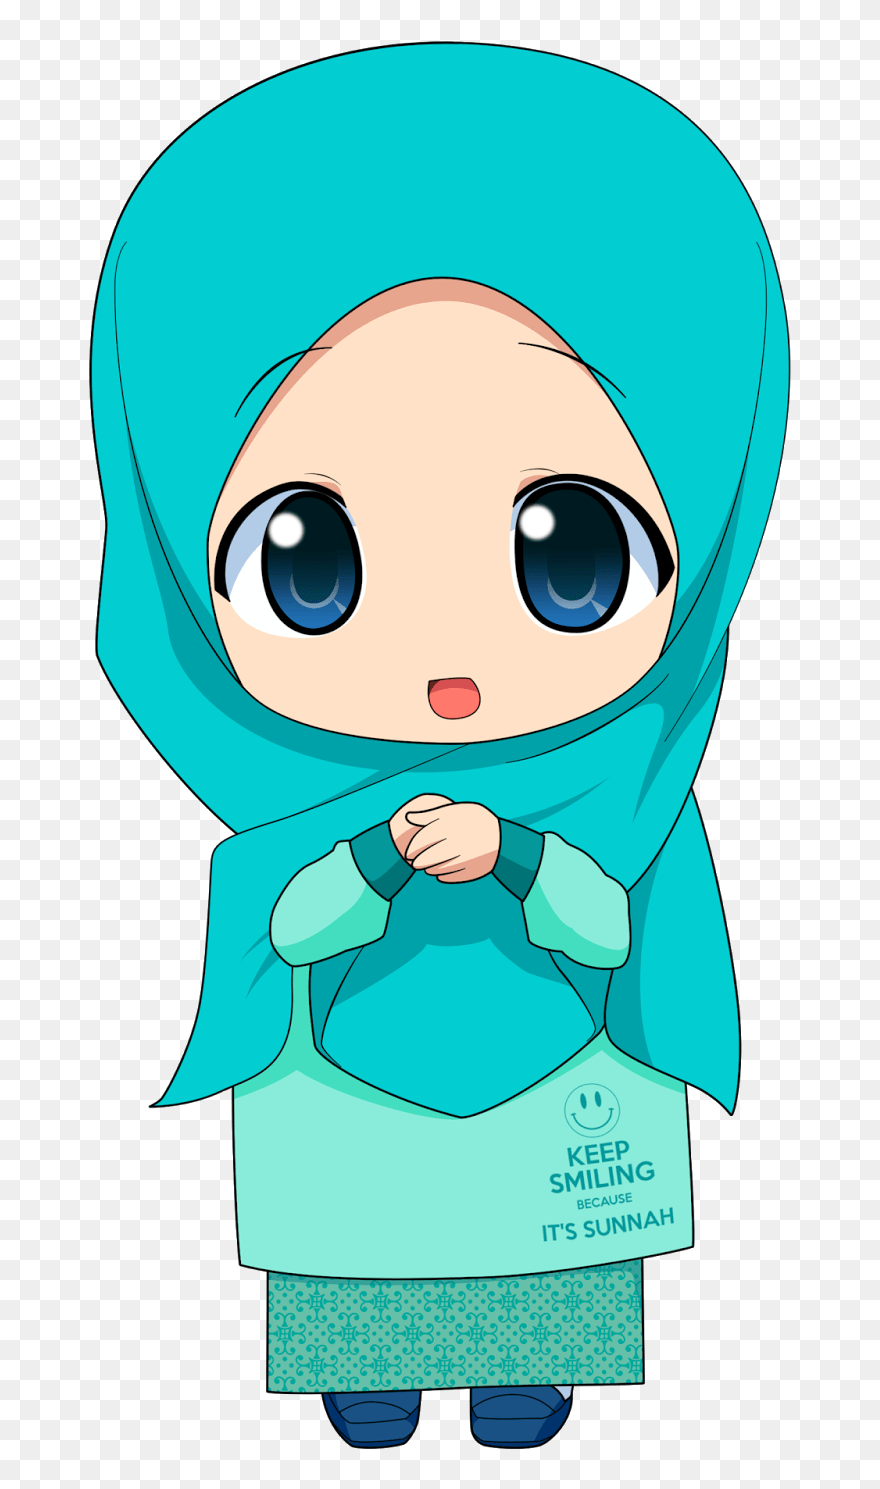 Free clipart images for commercial use. Anime Girl Hijab Clipart (#5517942) - PinClipart